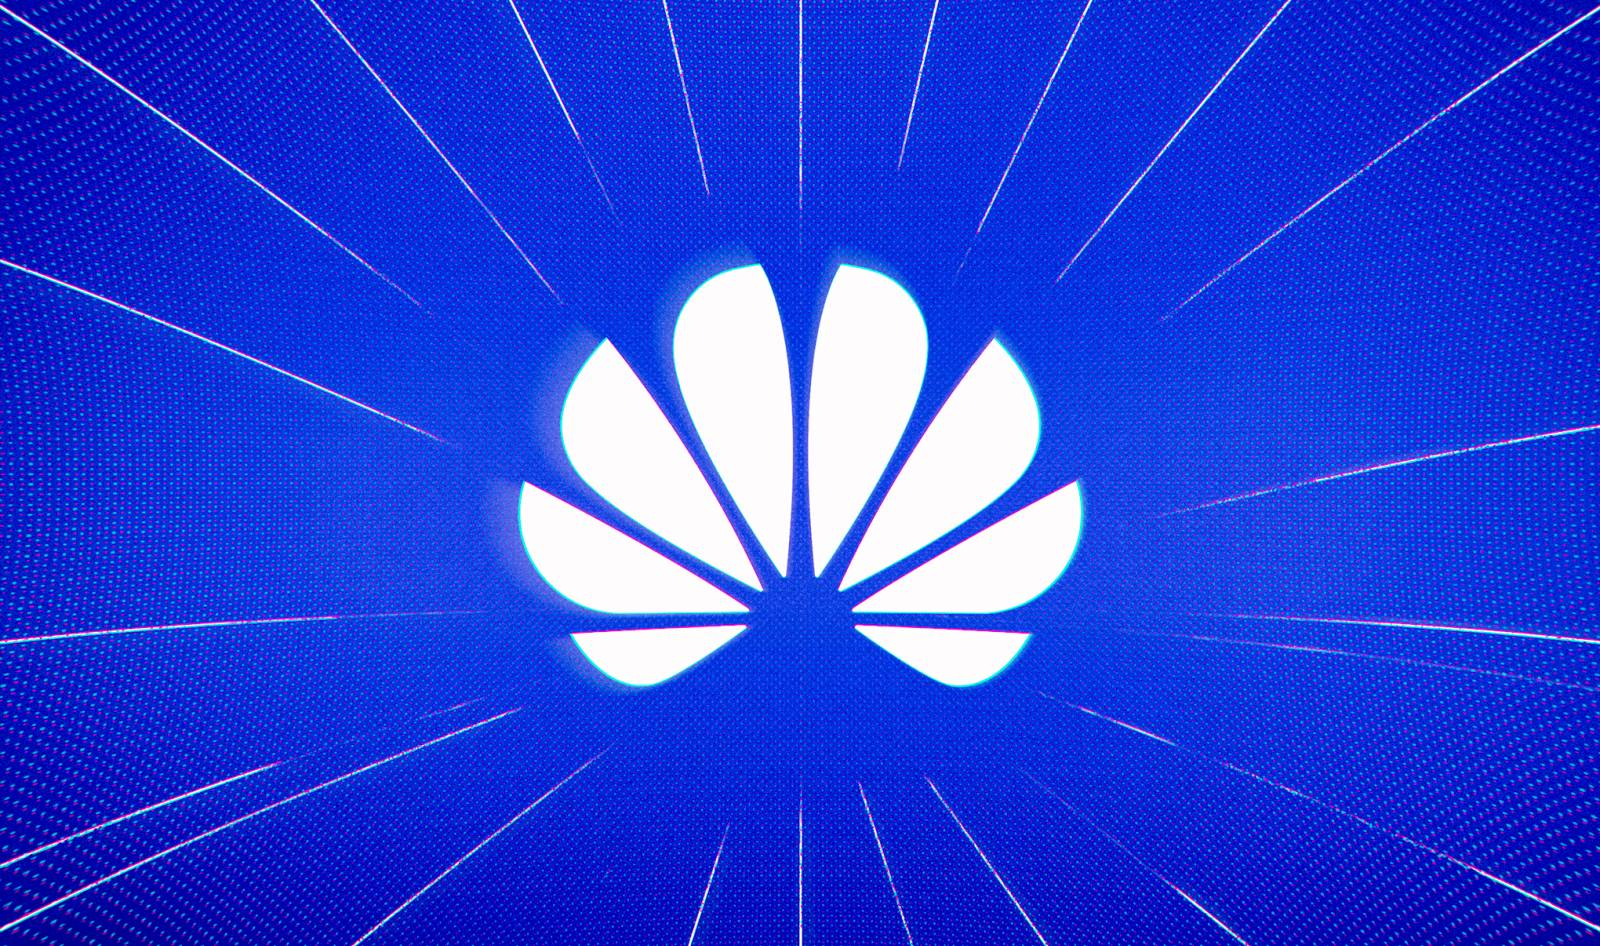 huawei android lansare